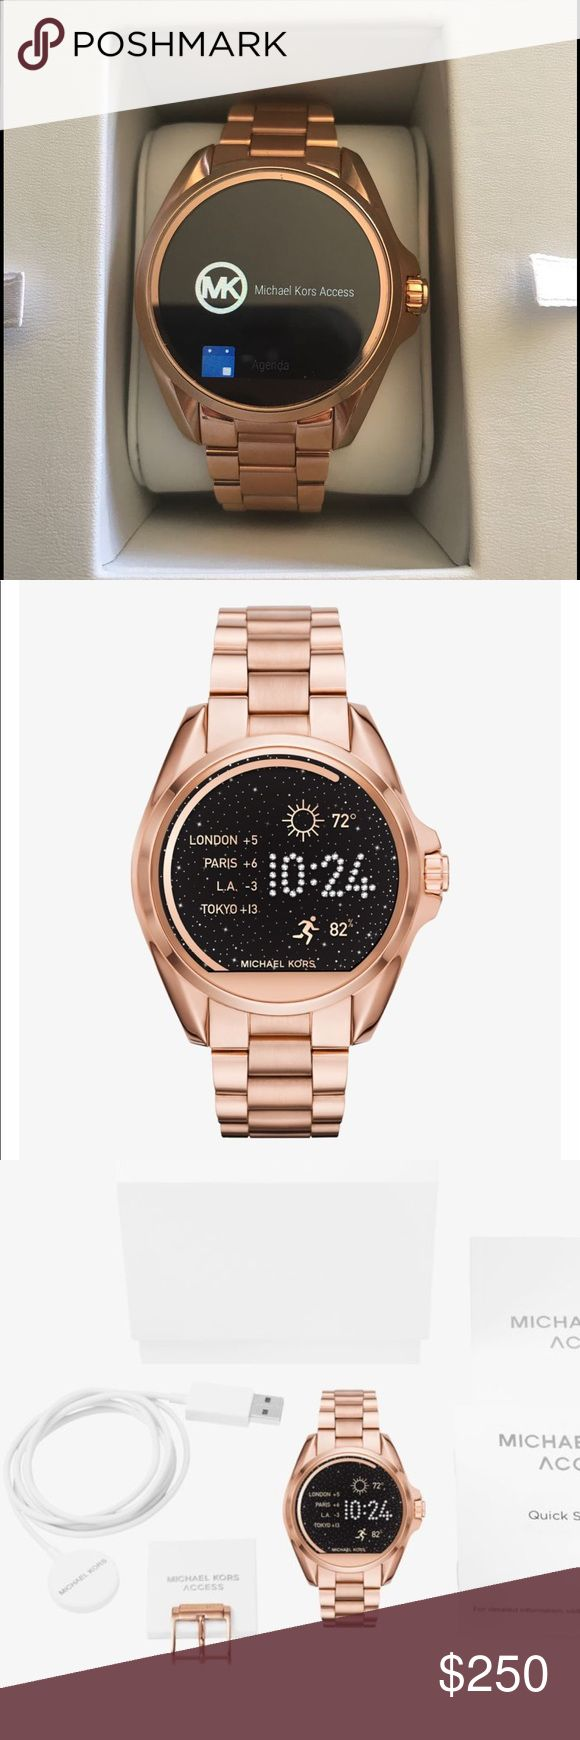 Michael Kors smartwatch The Michael Kors access Bradshaw rose-gold tone smart watch. Worn once. Includes everything from original packaging. Michael Kors Accessories Watches #michaelkors #watchmichaelkors #watches